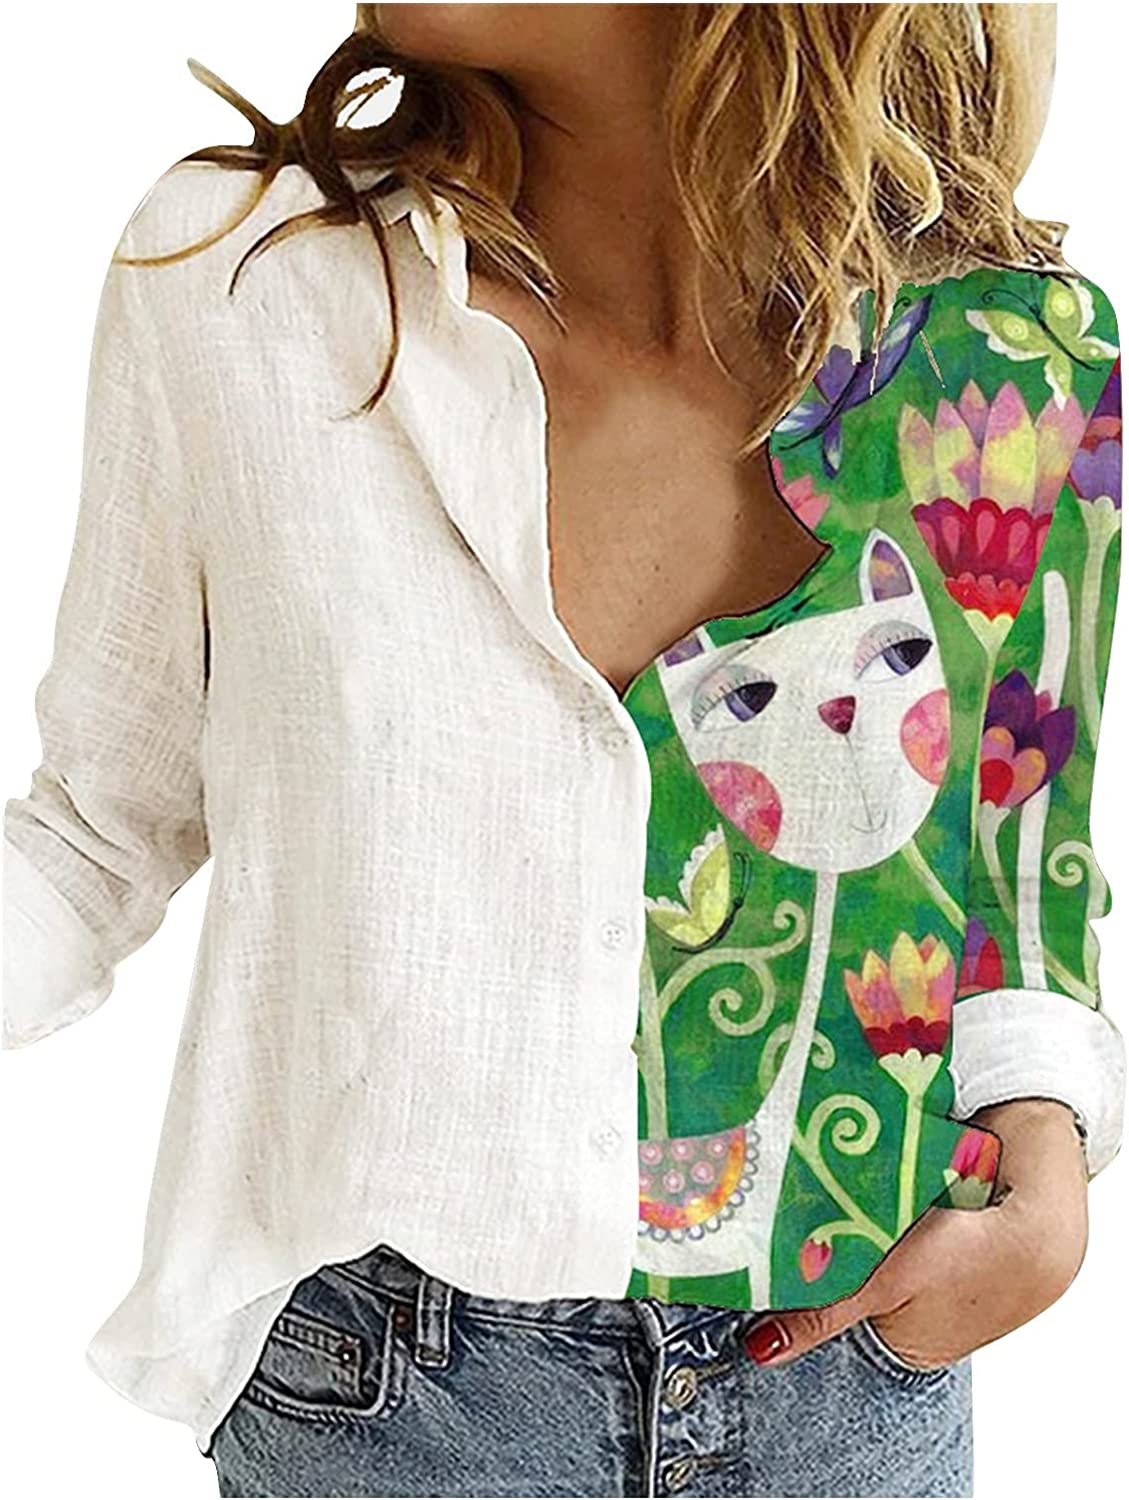 SEWORLD Women T Shirt Casual Pullover Plus Size O-Neck Printed Loose Button Tunic Tee Basic Blouse Tops